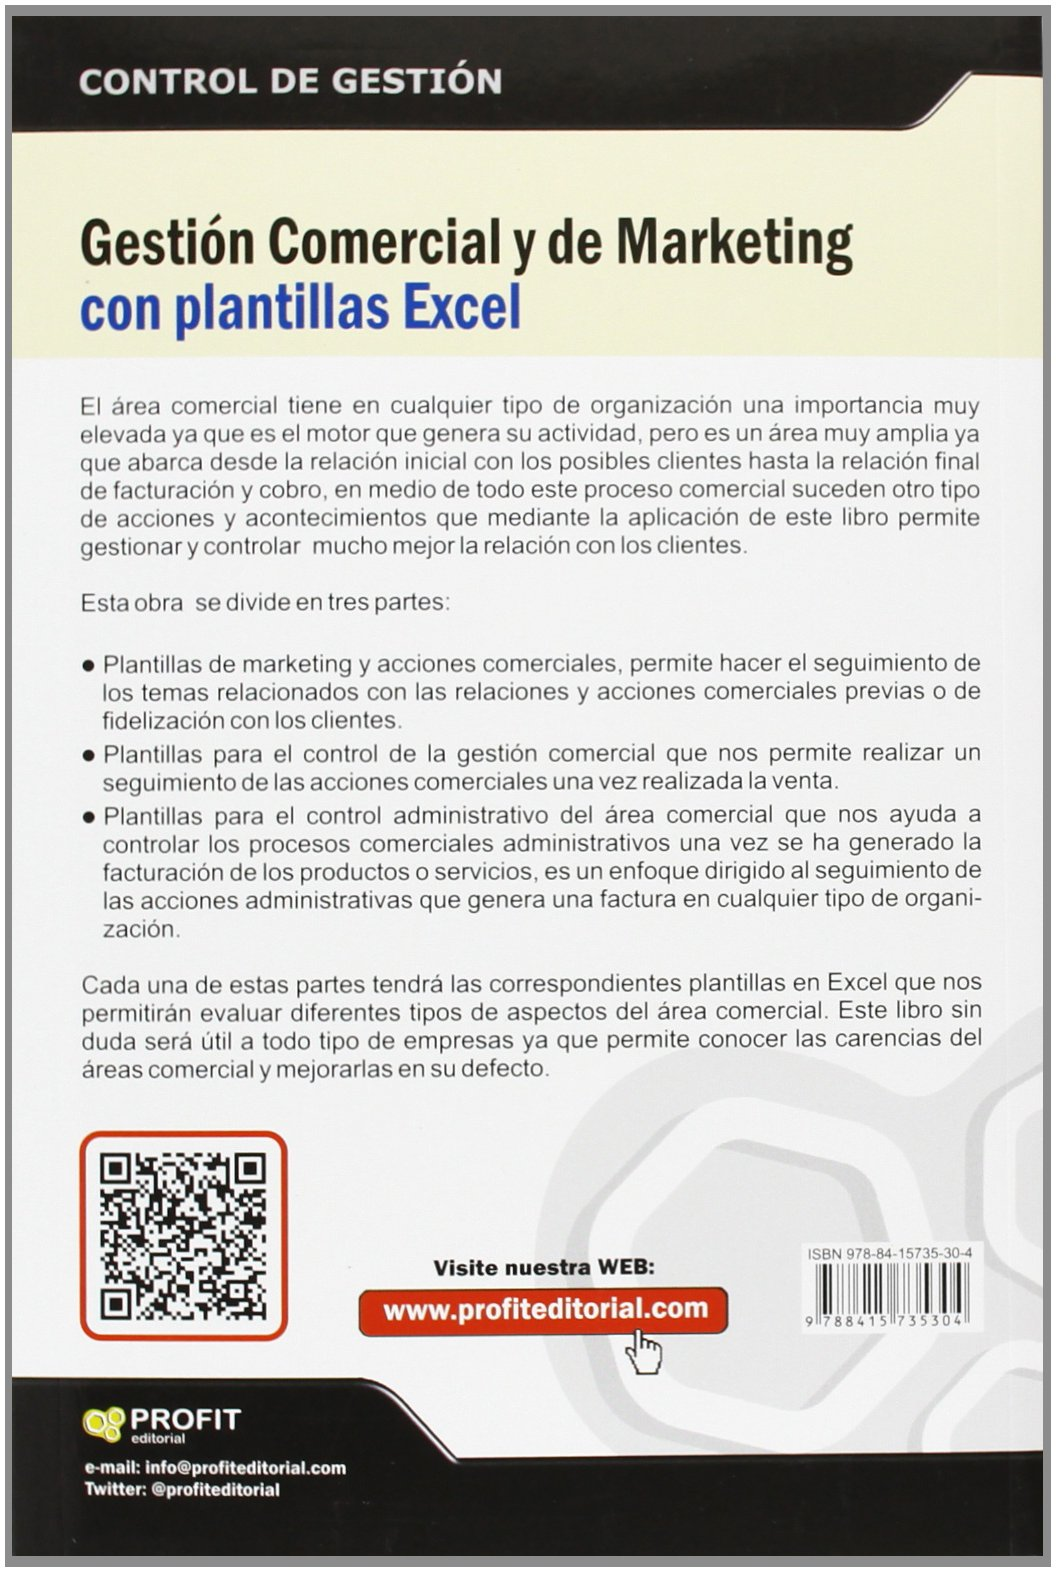 Gestión Comercial Y De Marketing con plantillas Excel: Amazon.es ...